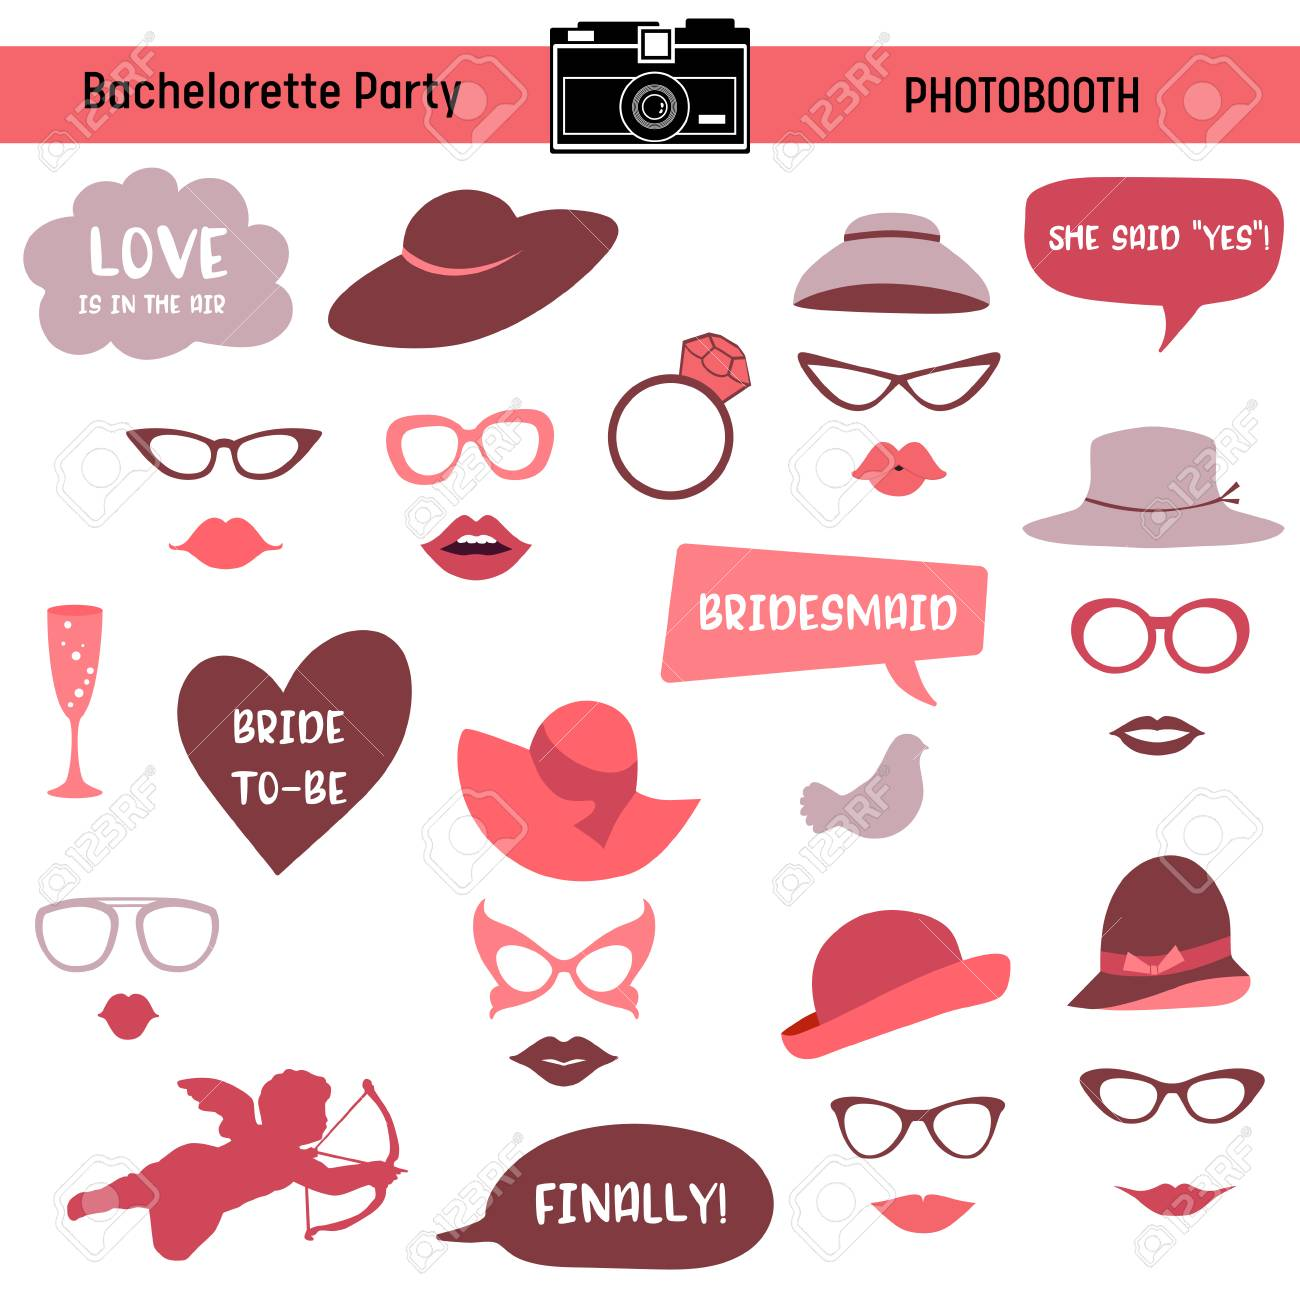 image regarding Free Printable Bridal Shower Photo Booth Props known as Bachelorette party, Rooster occasion, bridal shower printable Gles,..